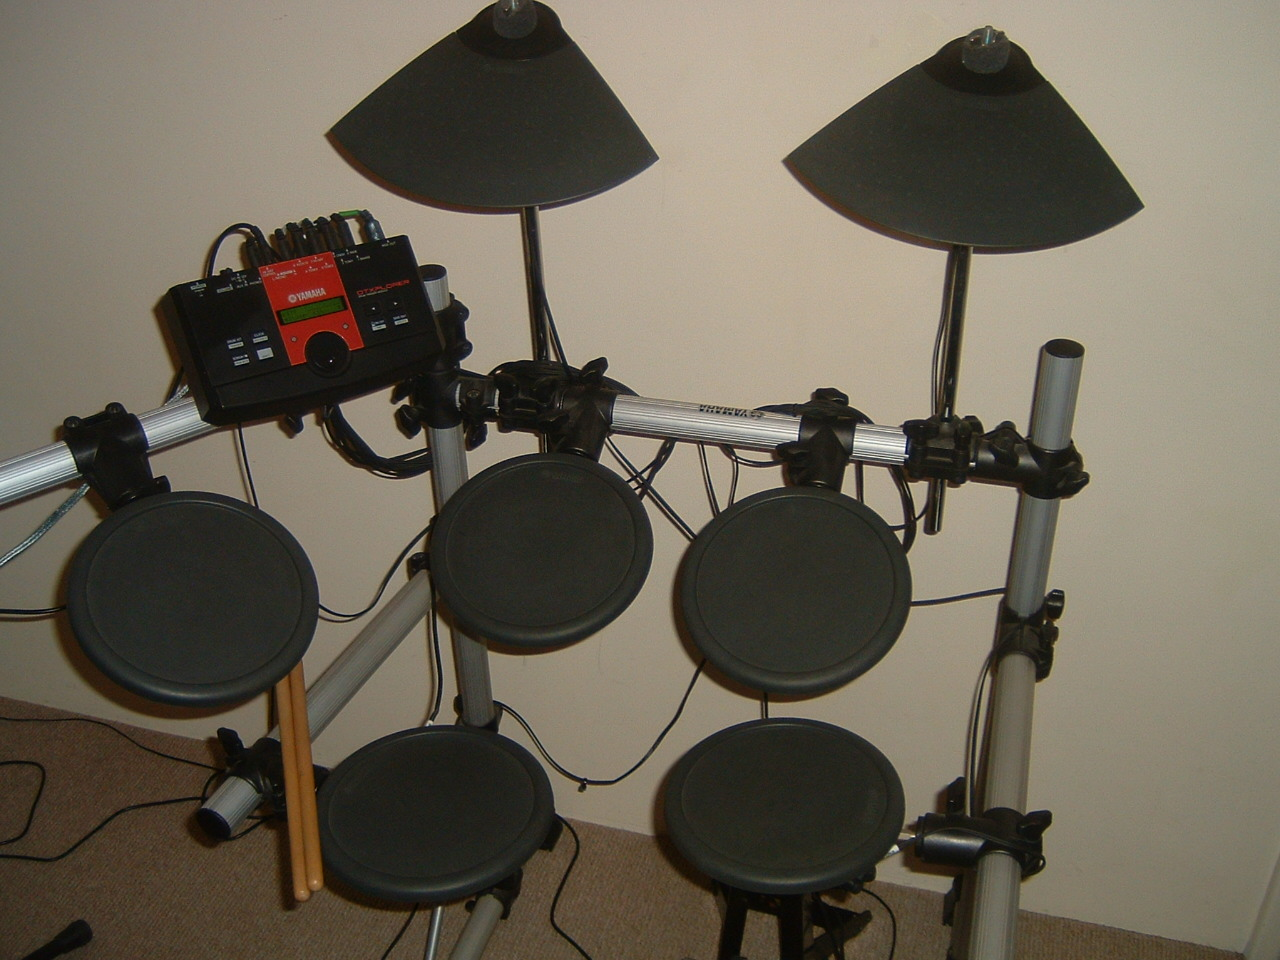 yamaha dtxplorer how to set it up with reason howtoprogramdrums com rh howtoprogramdrums com Used Electronic Drum Kits Reconditioned Drum